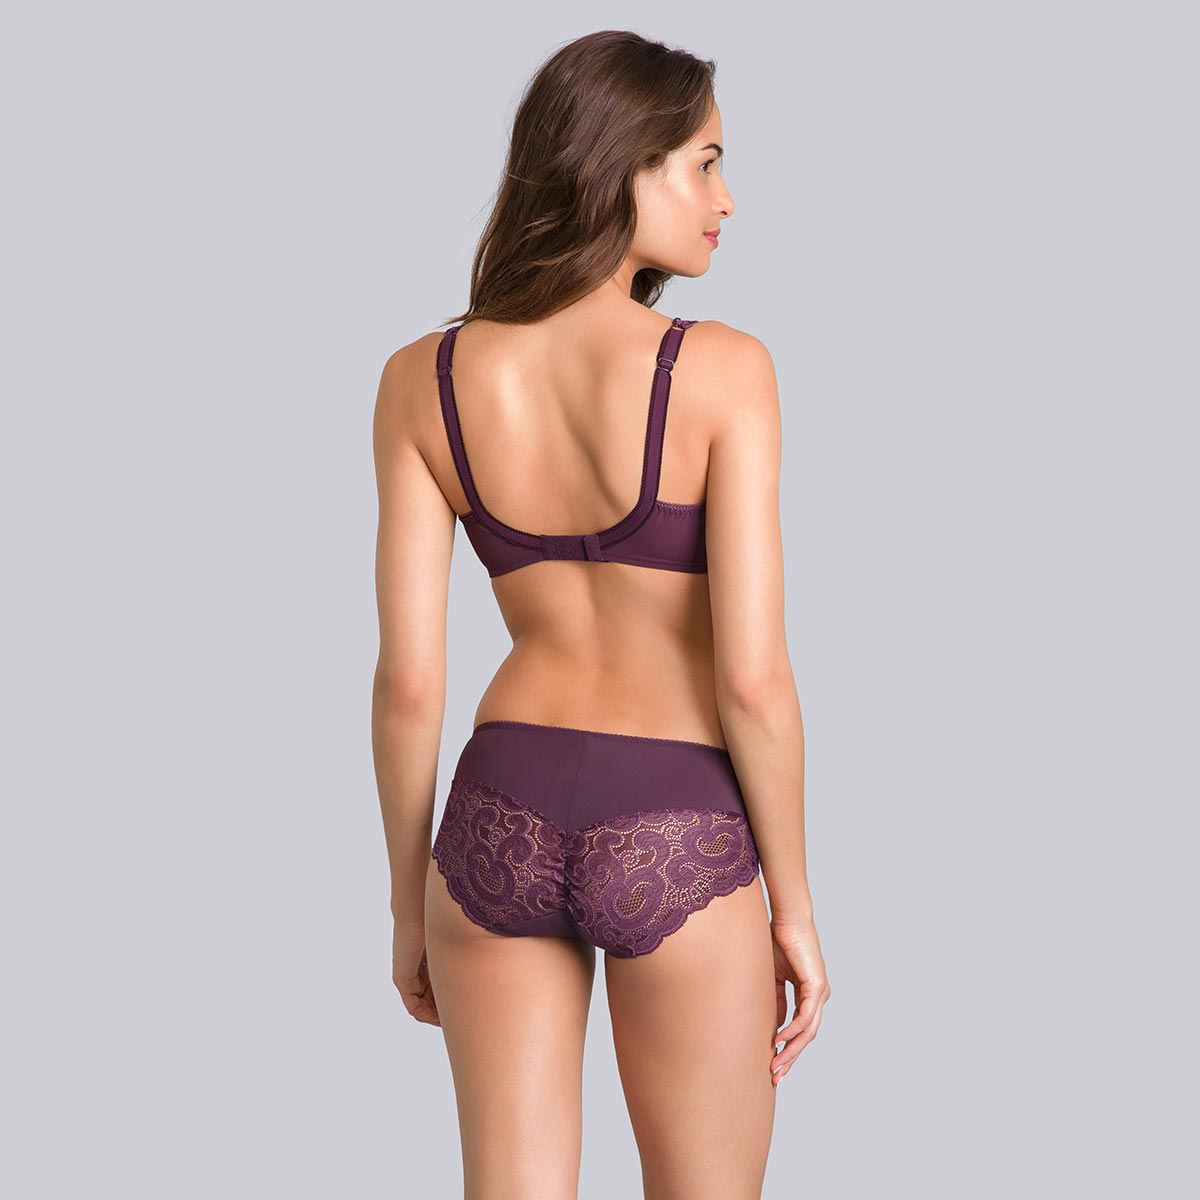 Black plum midi briefs - Invisible Elegance-PLAYTEX